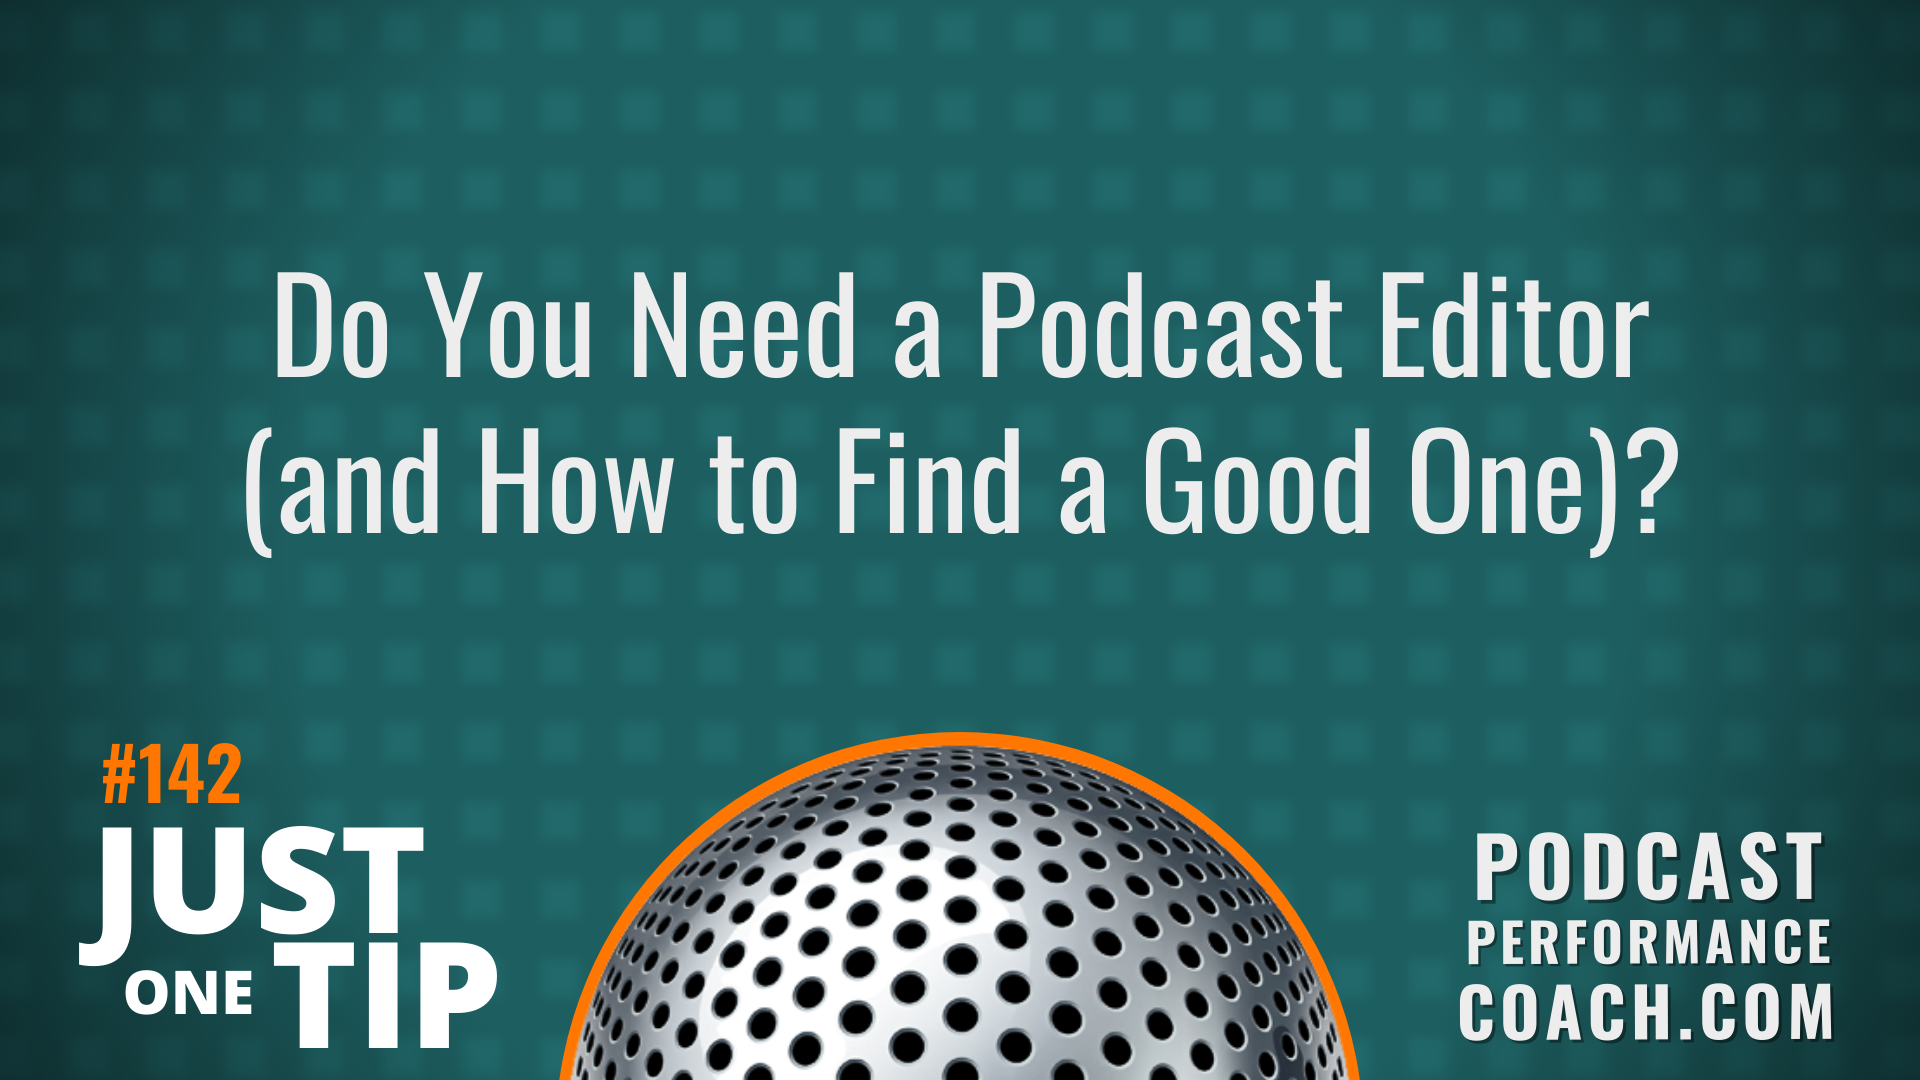 142 Do You Need a Podcast Editor (and How to Find a Good One)?